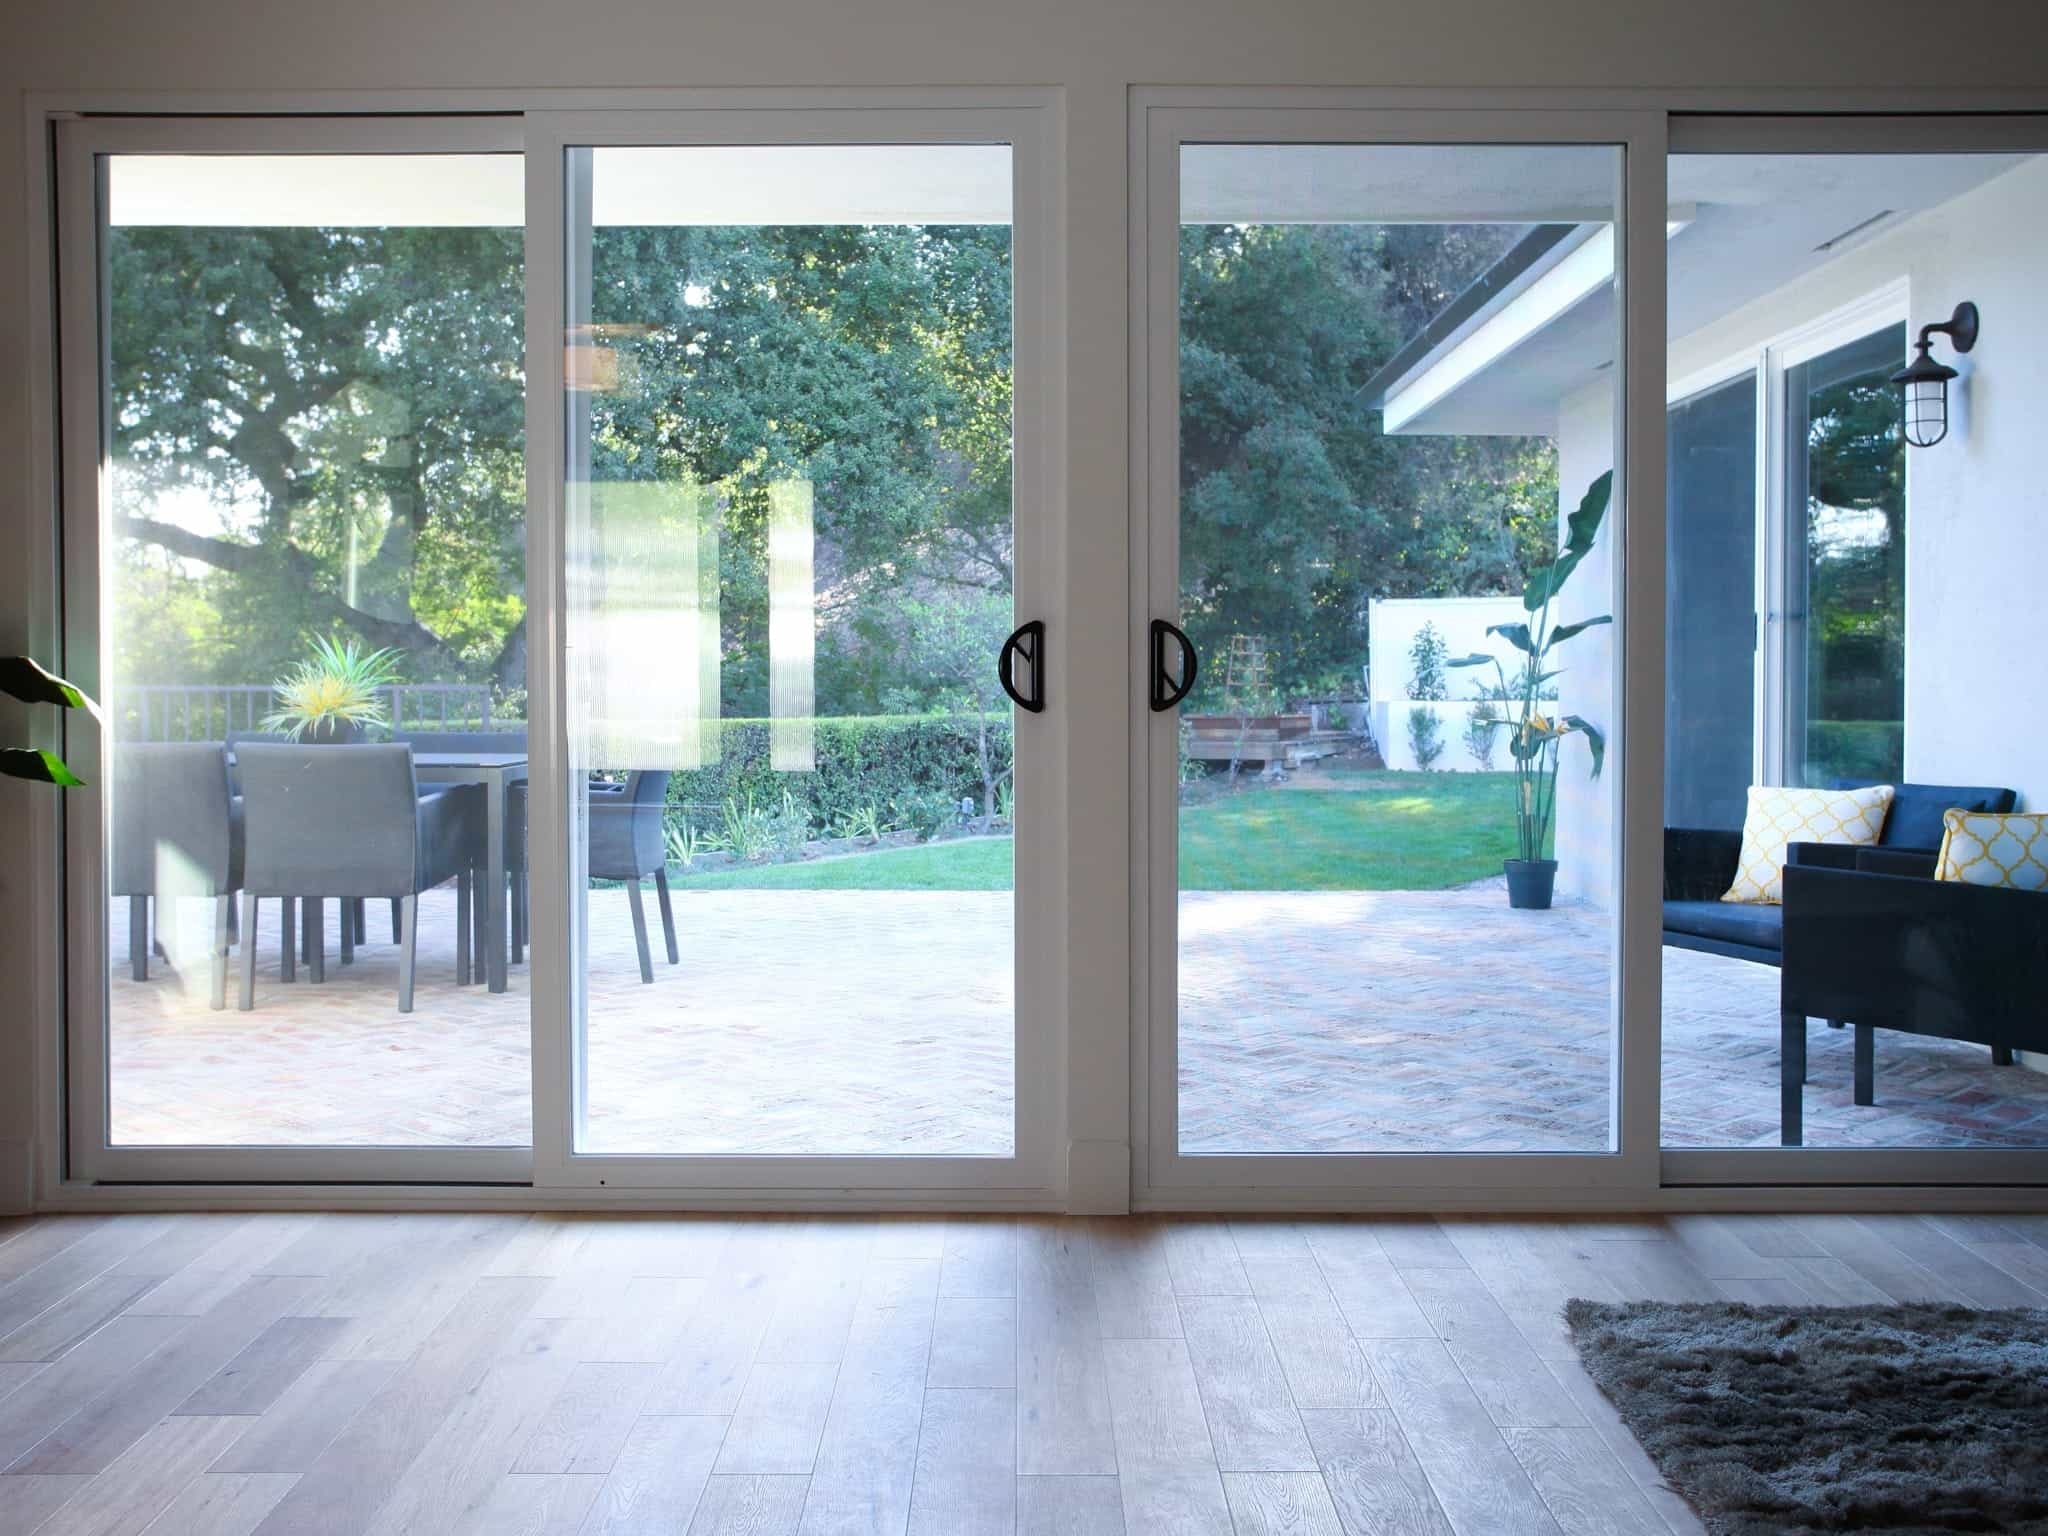 Minimalist Glass Sliding Doors Looks Out To Terrace (Image 13 of 27)